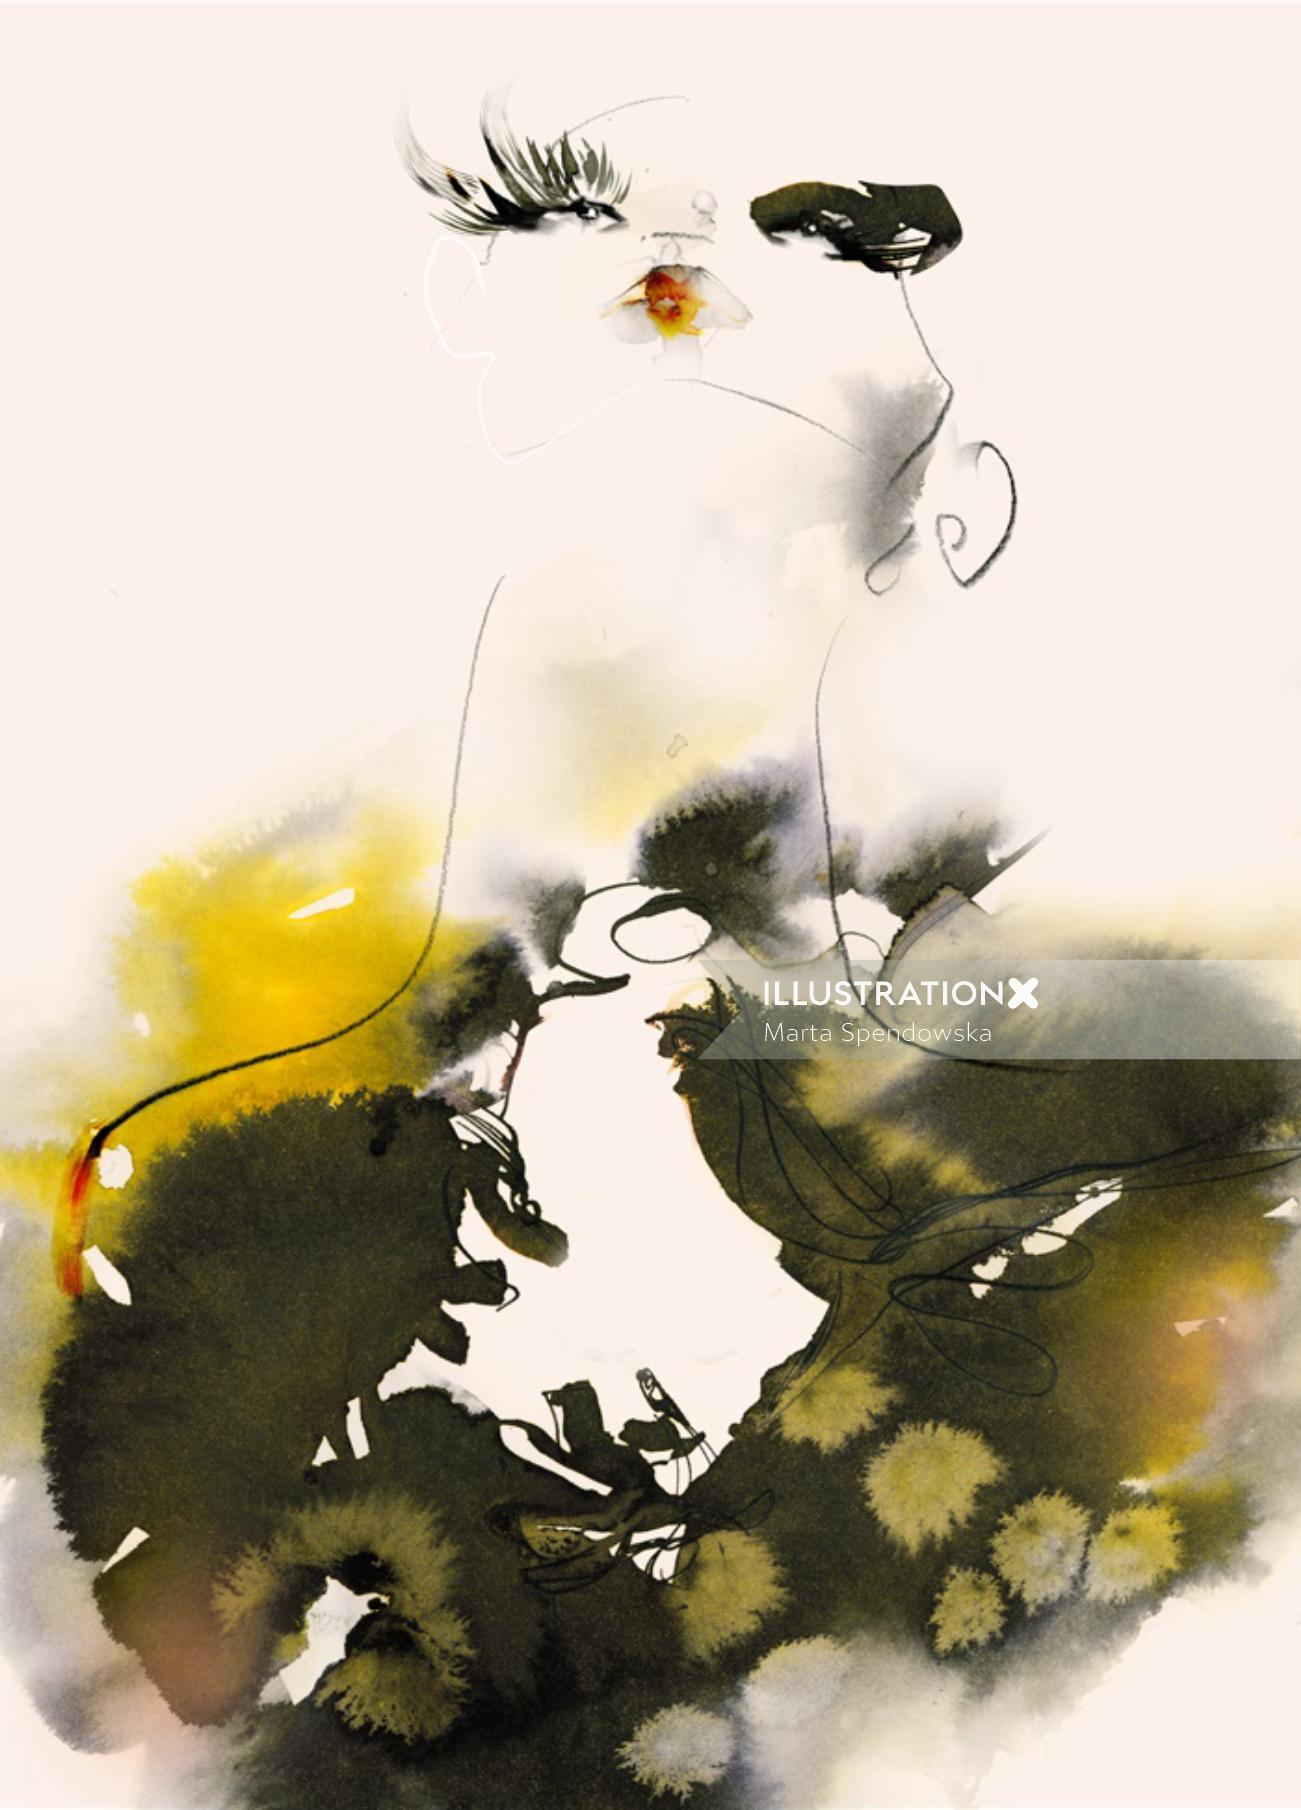 Abstract illustration of a woman